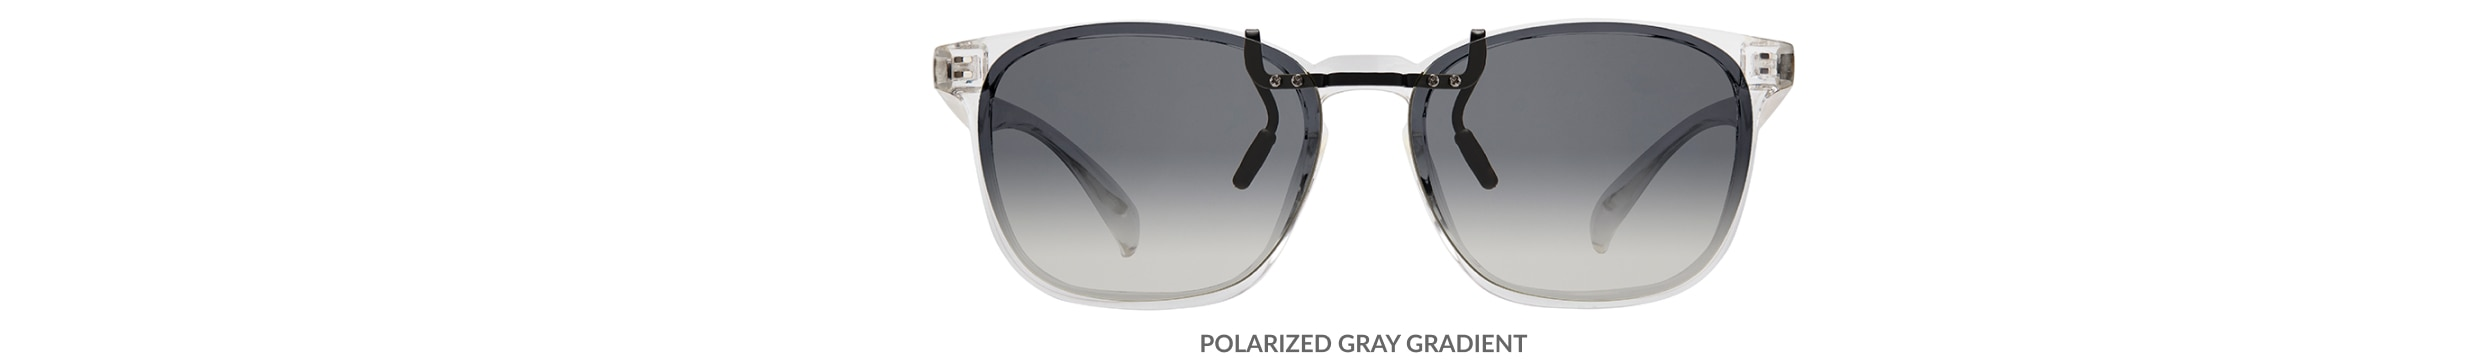 Custom clip-ons. Our polarized custom clip-ons reduce glare and are available for almost any frame. Each clip-on is specially cut to fit the frame with prices starting at just $3.95  (Compare to $50). Zenni square glasses #2020123 in clear, shown with gradient gray polarized custom clip-on.